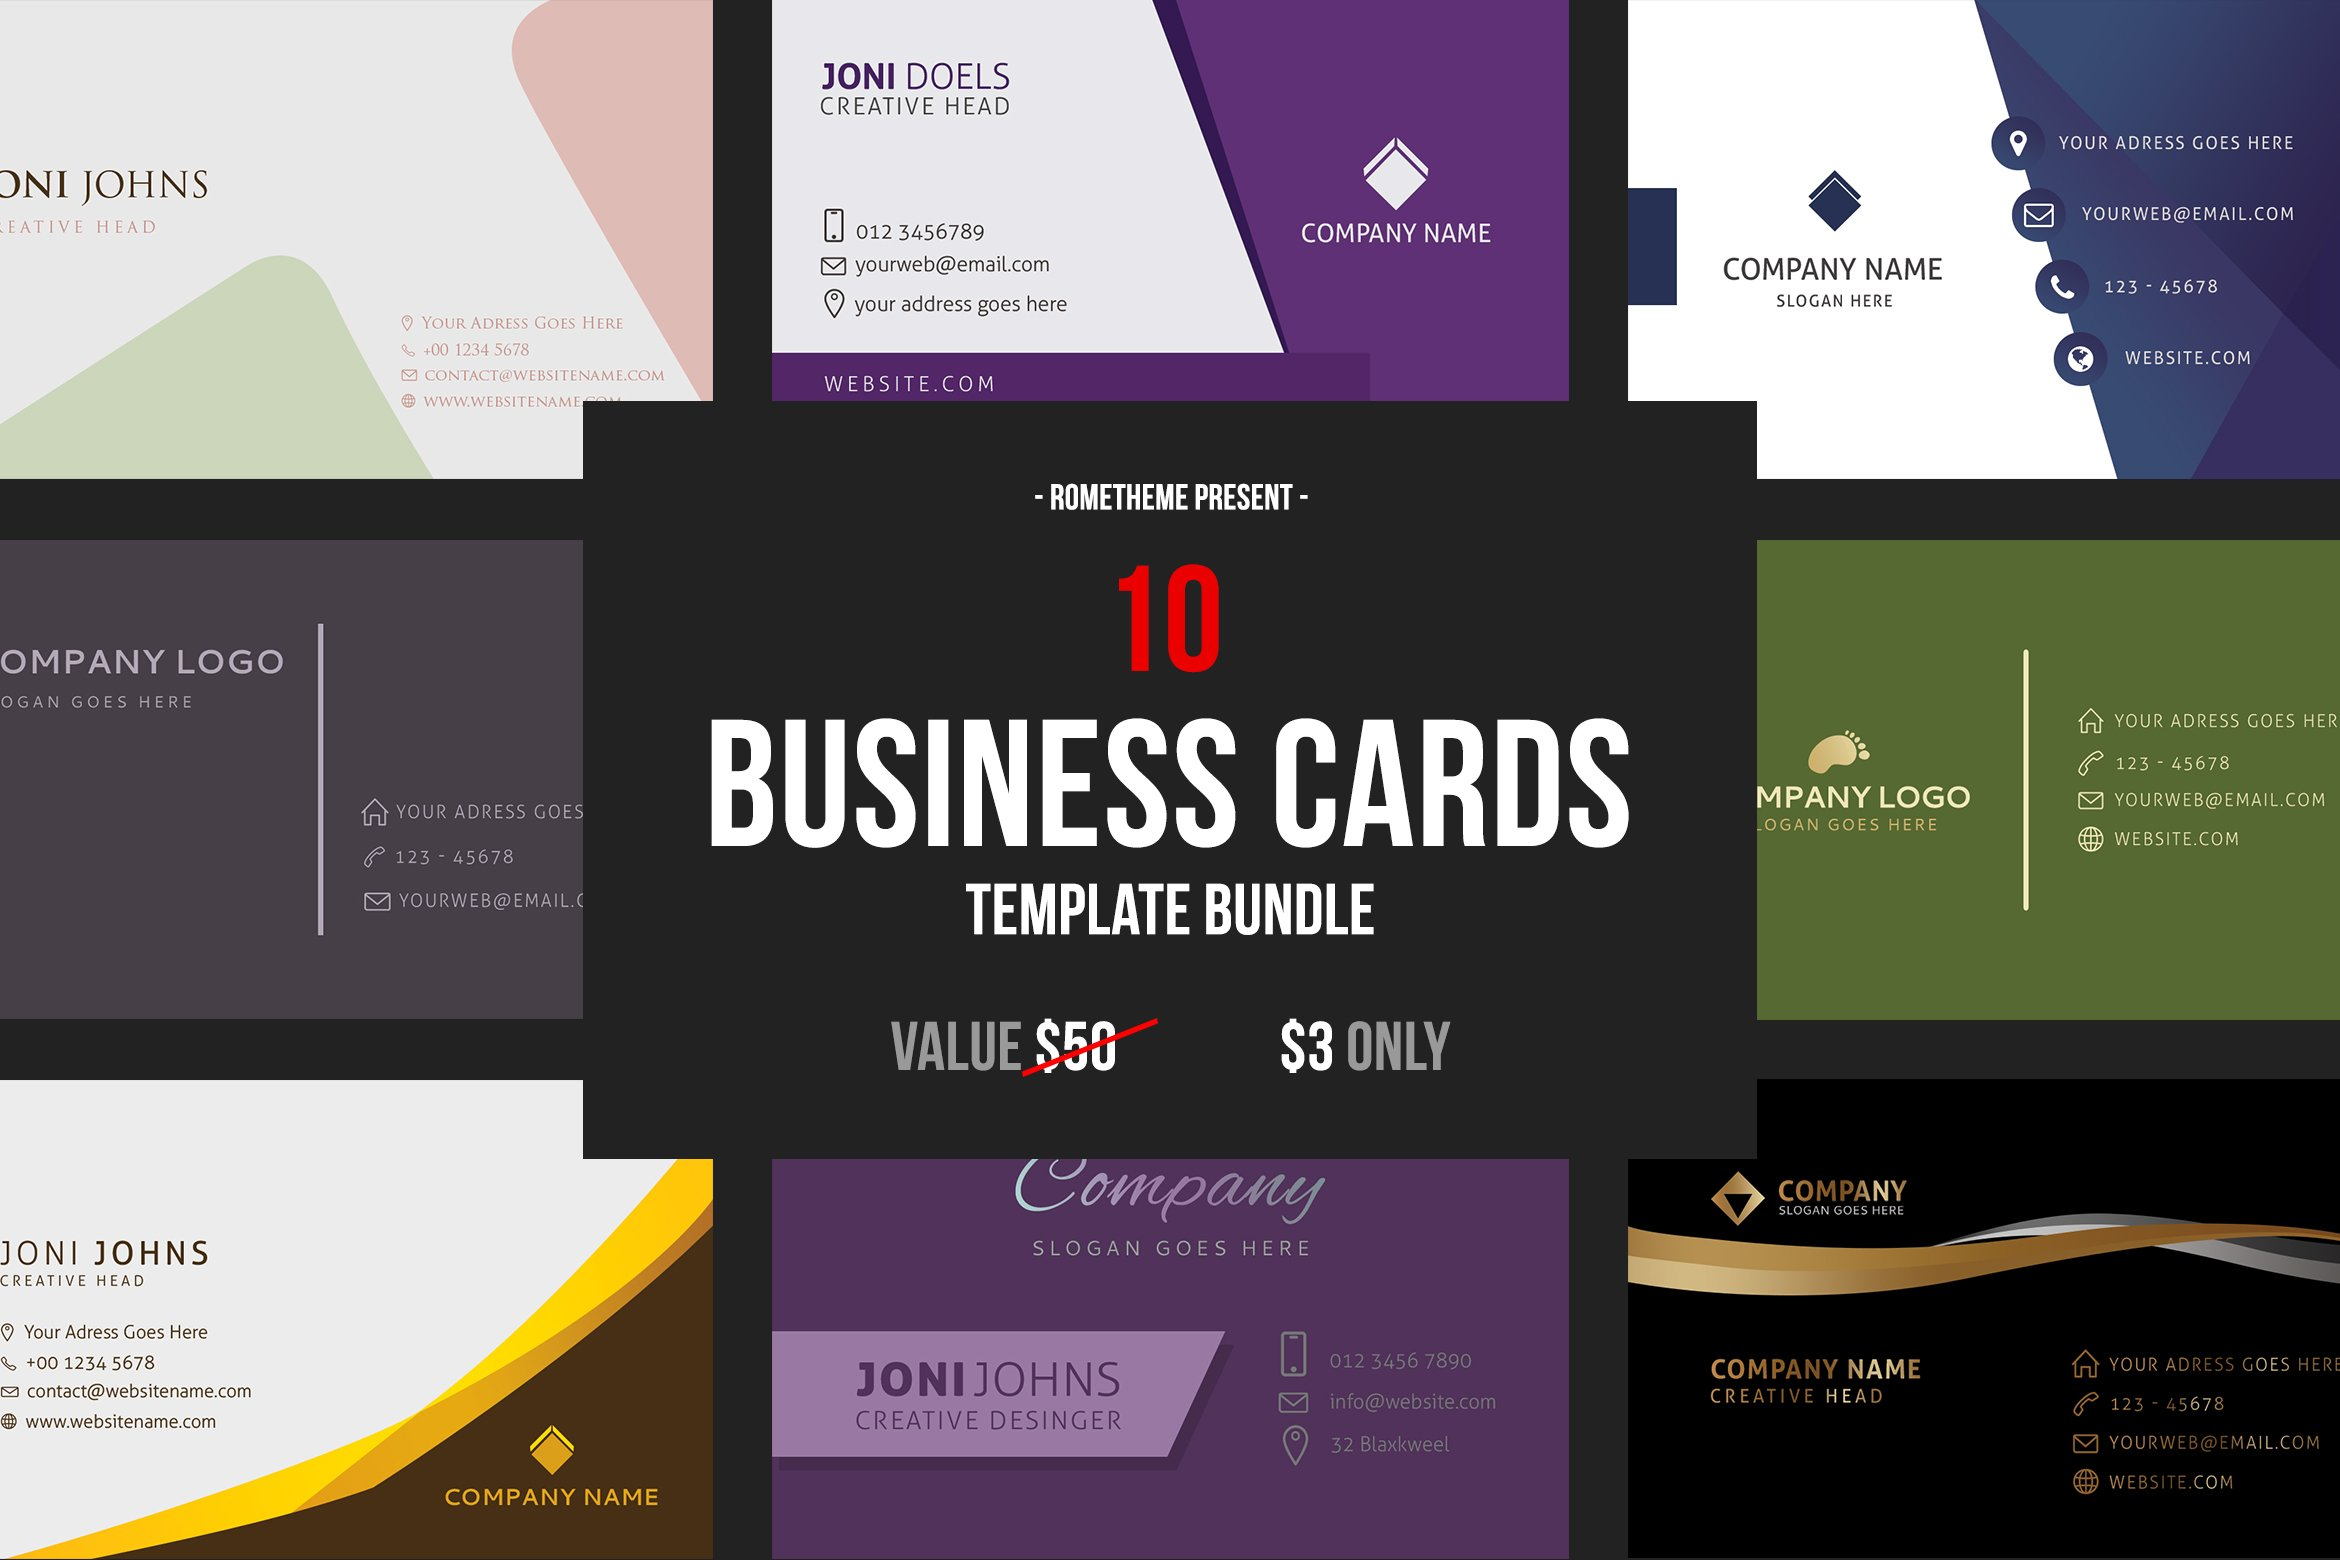 10 Business Card Template Bundle.